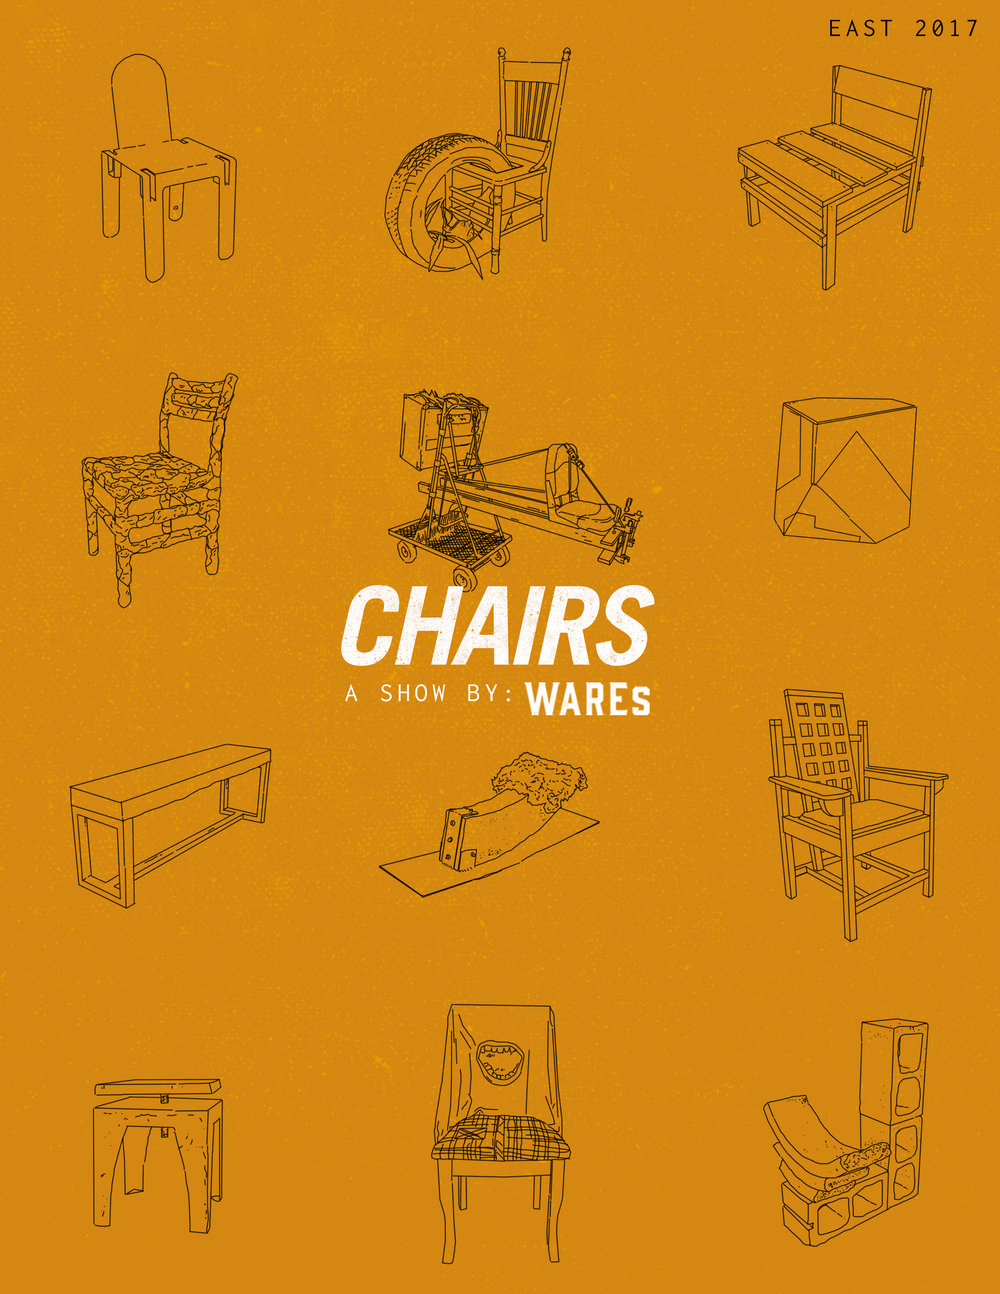 CHAIRS by WAREs– Nov 2017 – (@East 4th St) East Austin Studio Tours  - This exhibition features the 'chair' as object, sculpture, and furniture as conceived through the eyes of central Texas artists, designers, and makers.